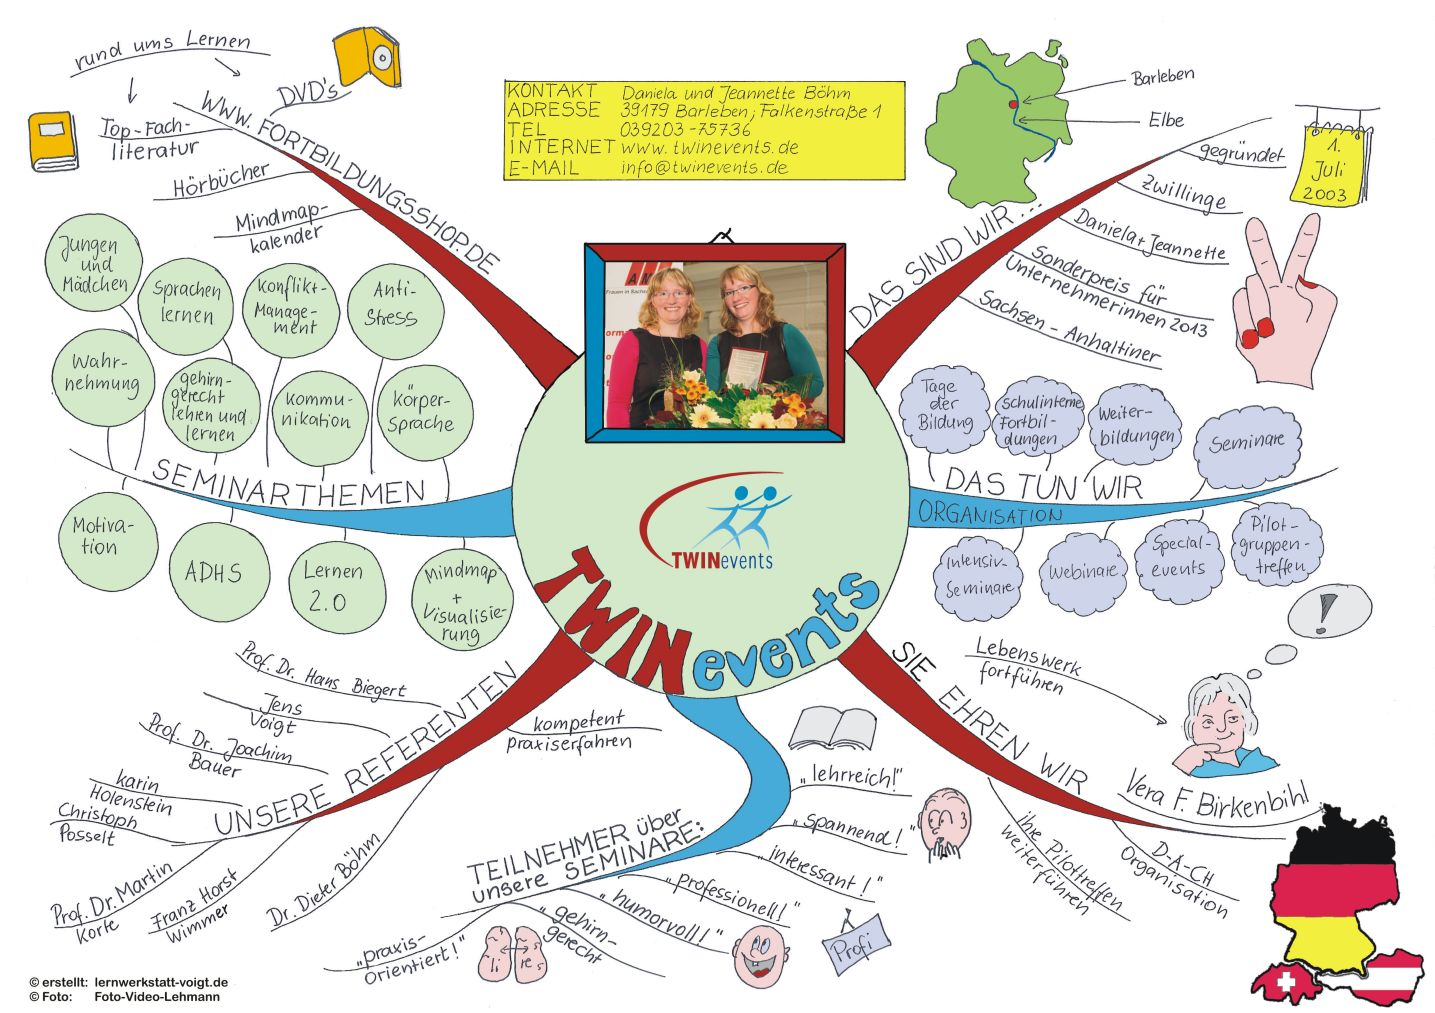 800x600 Mindmap Twinevents